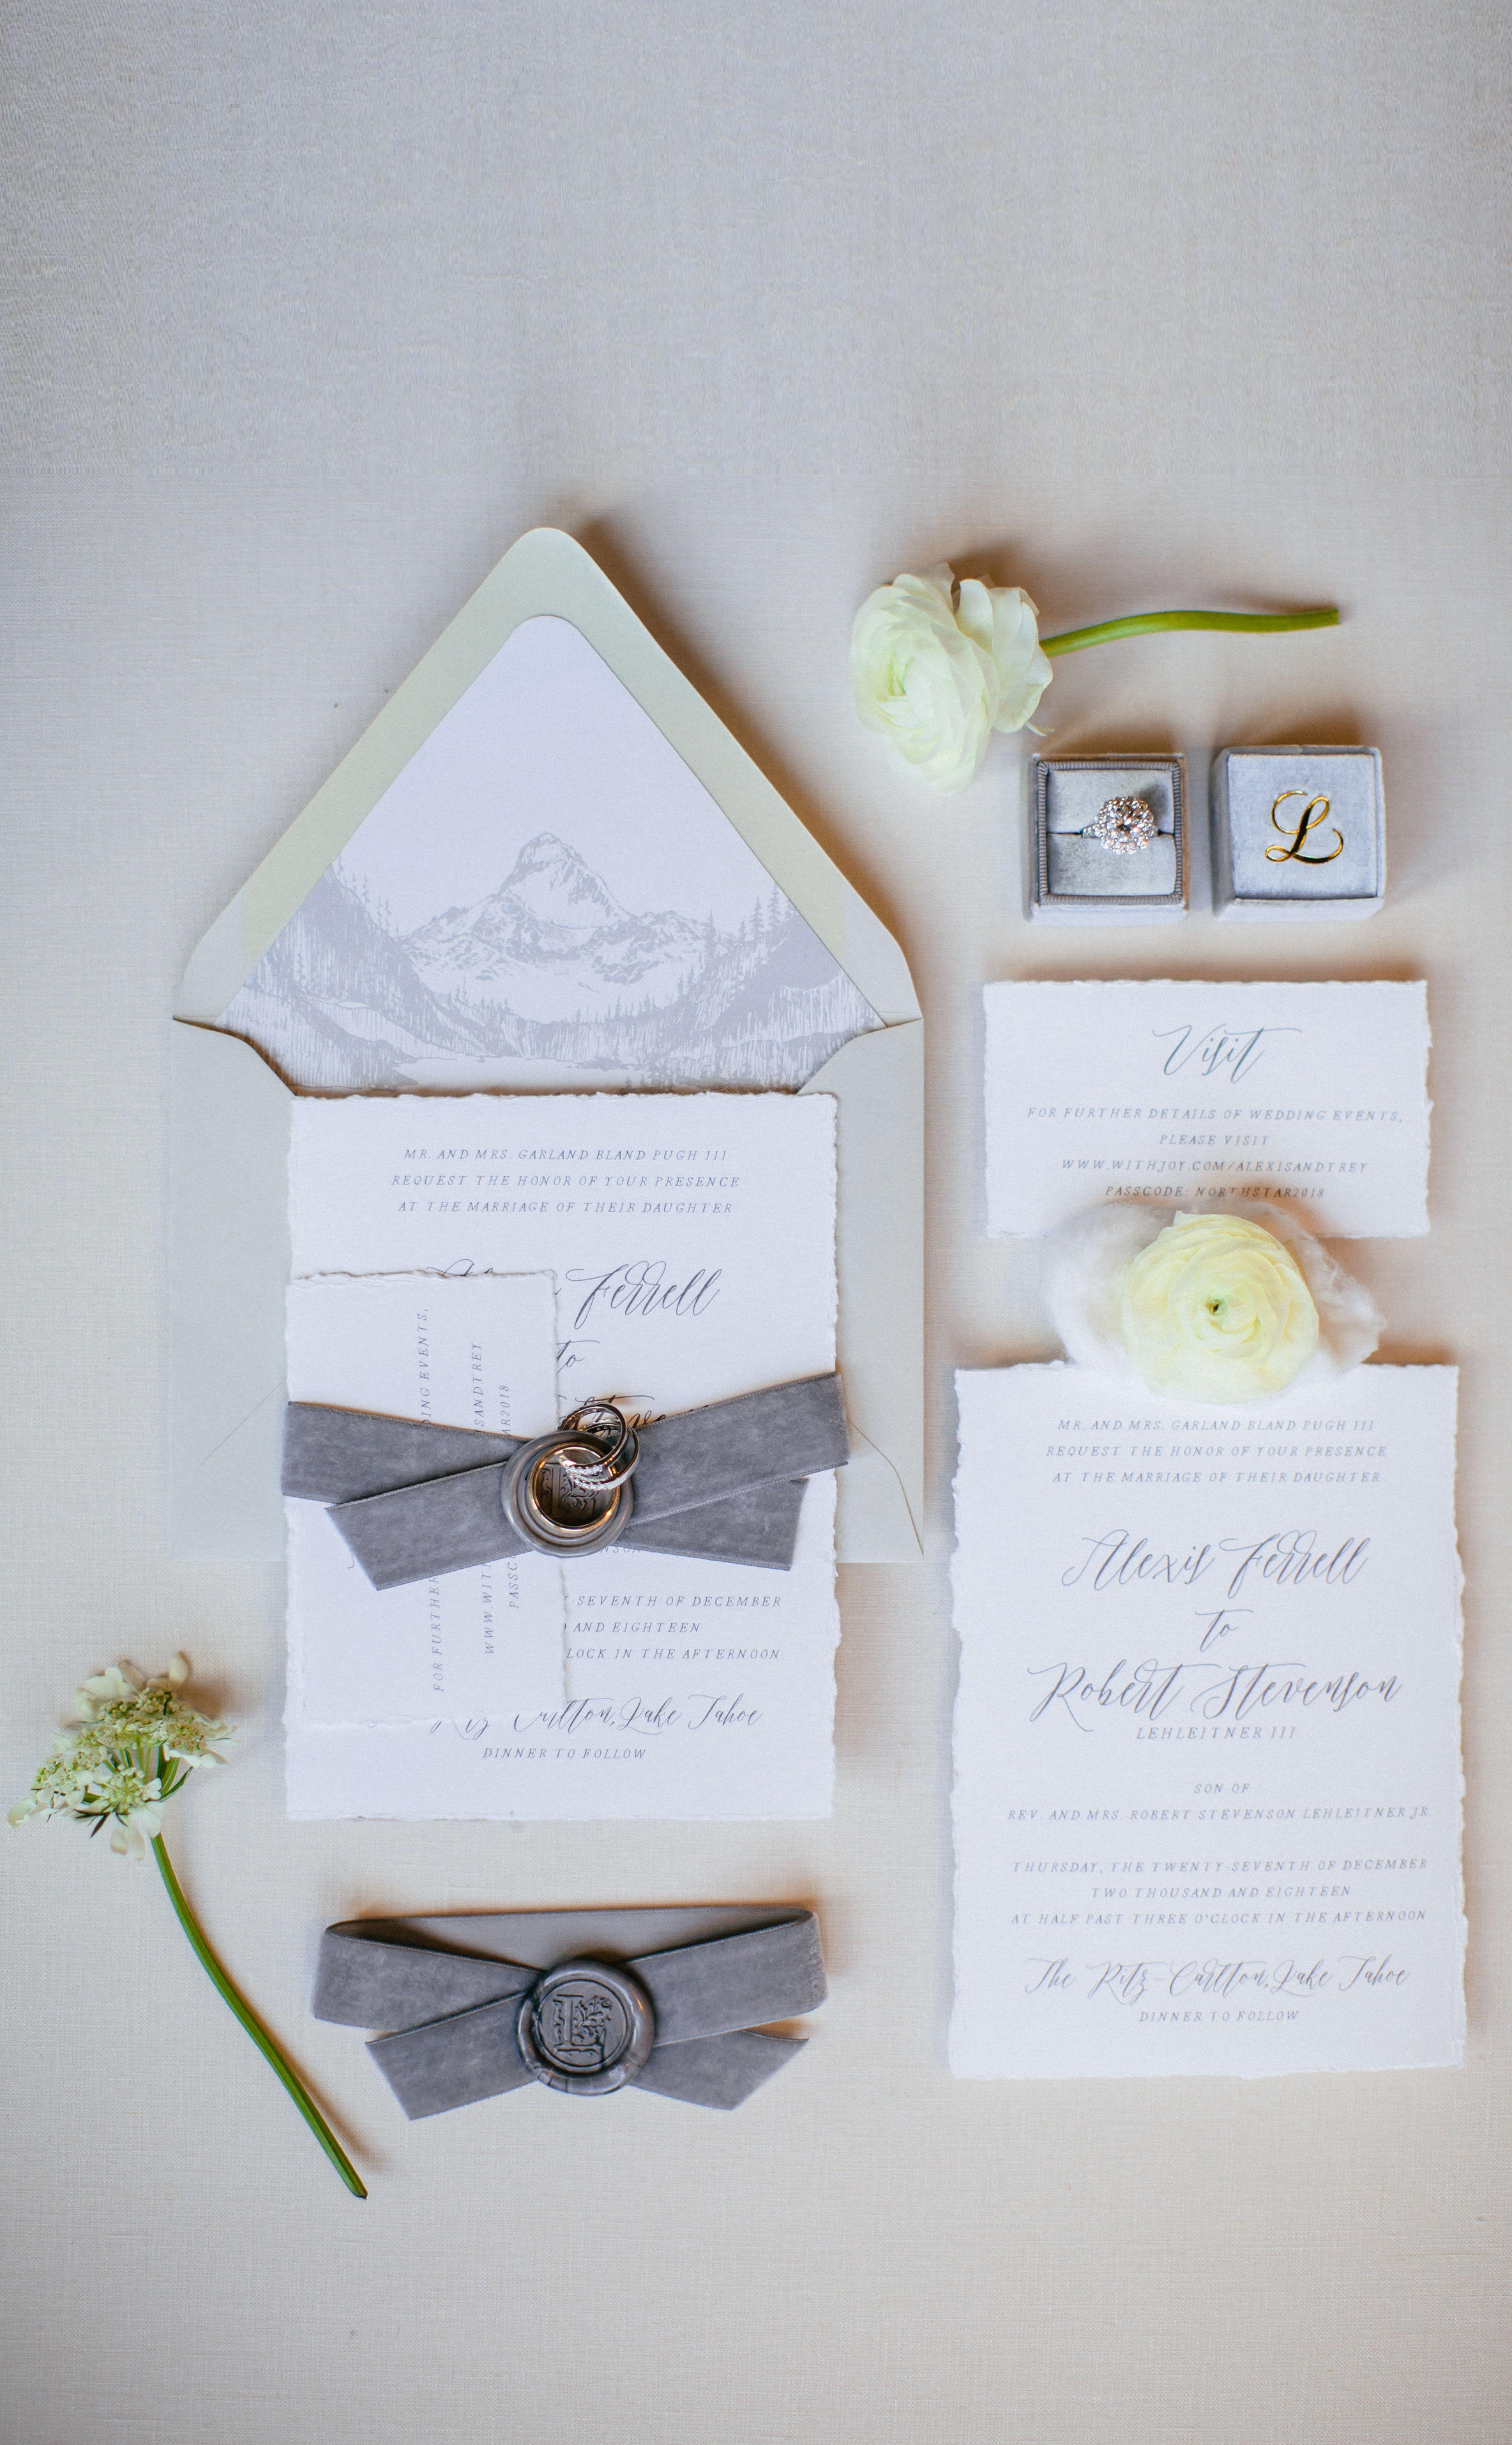 Deckle Edge Wedding Invitation